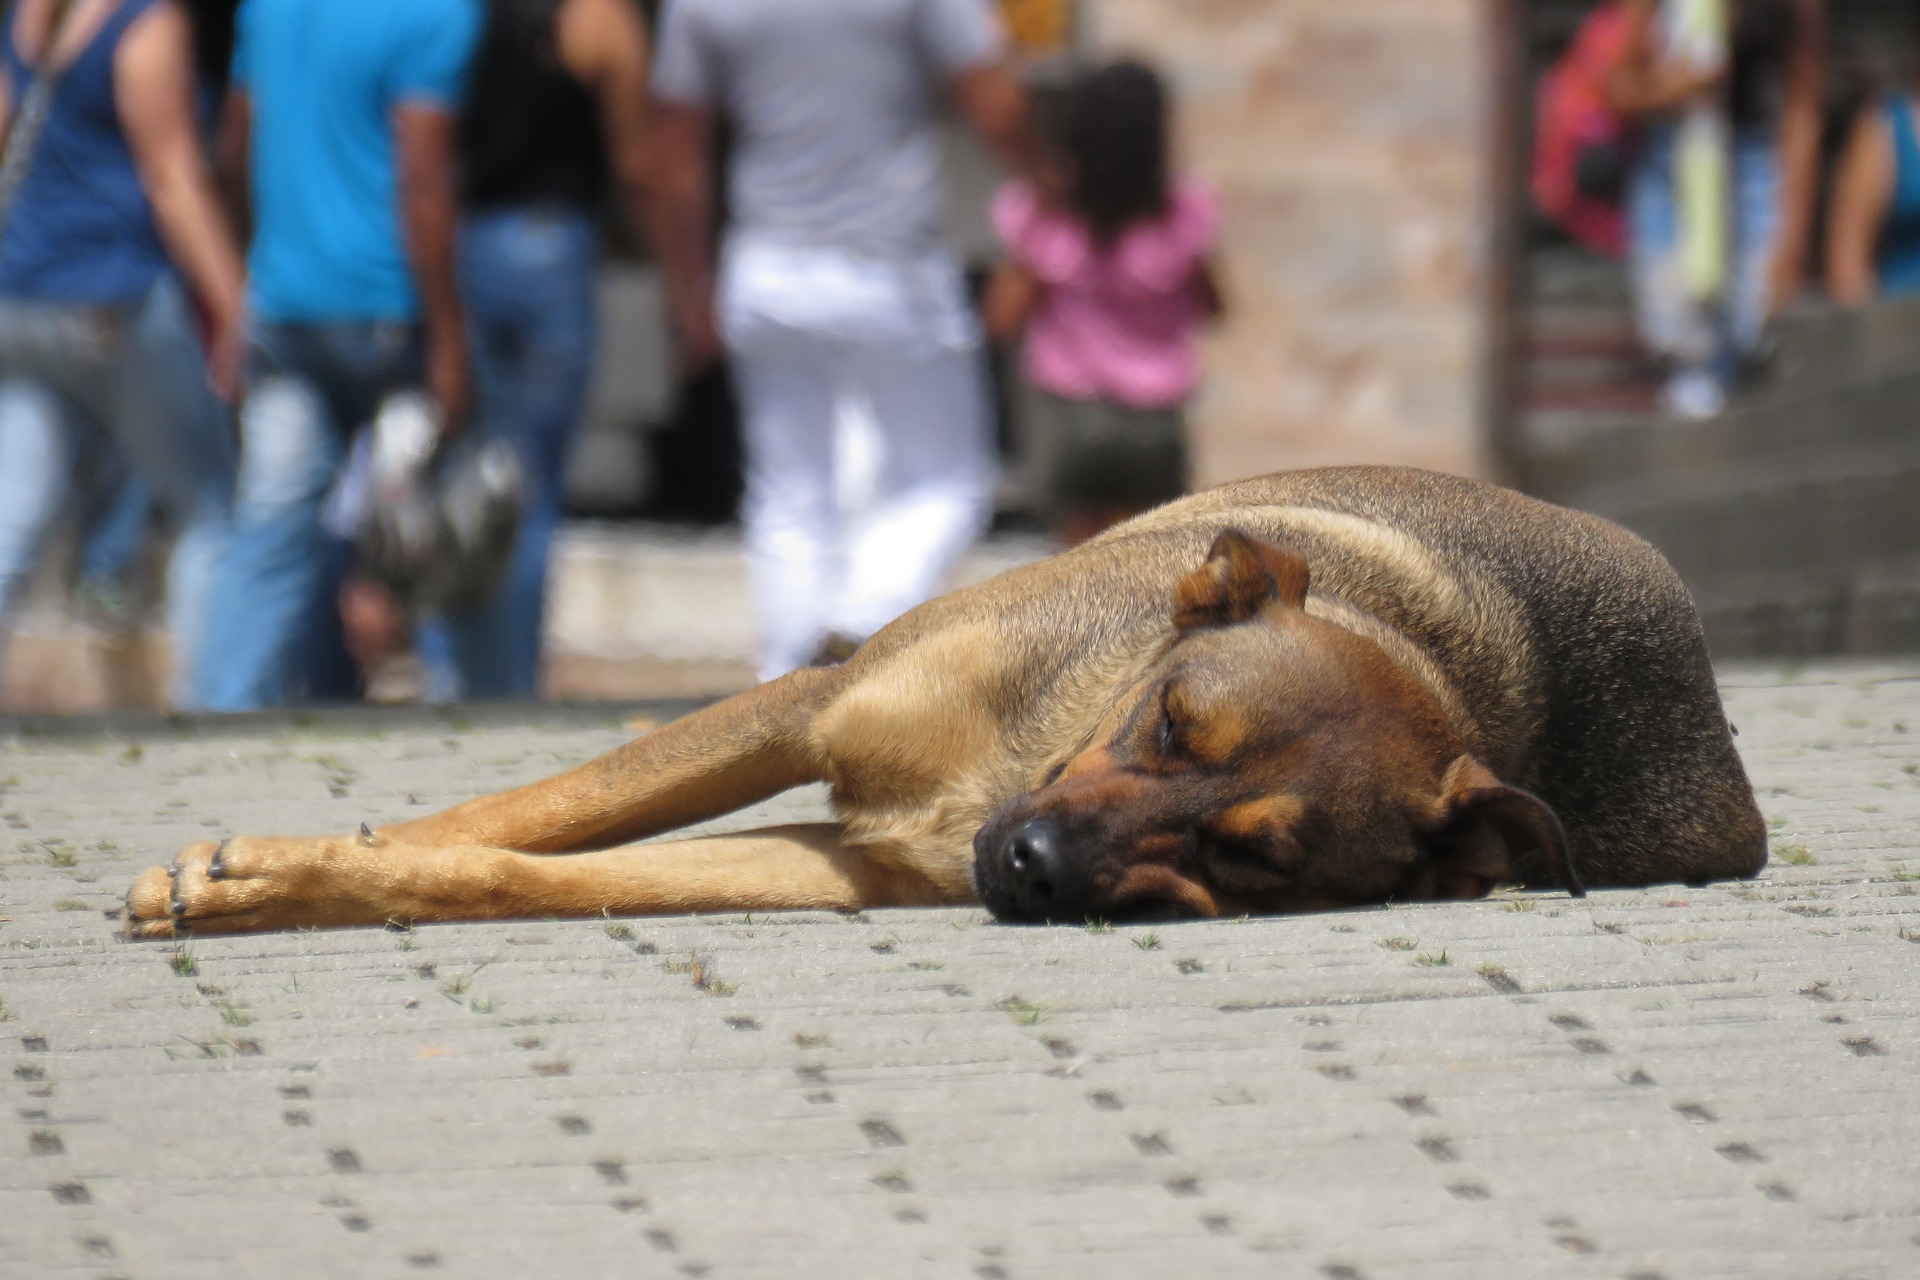 Dog lying on the ground.